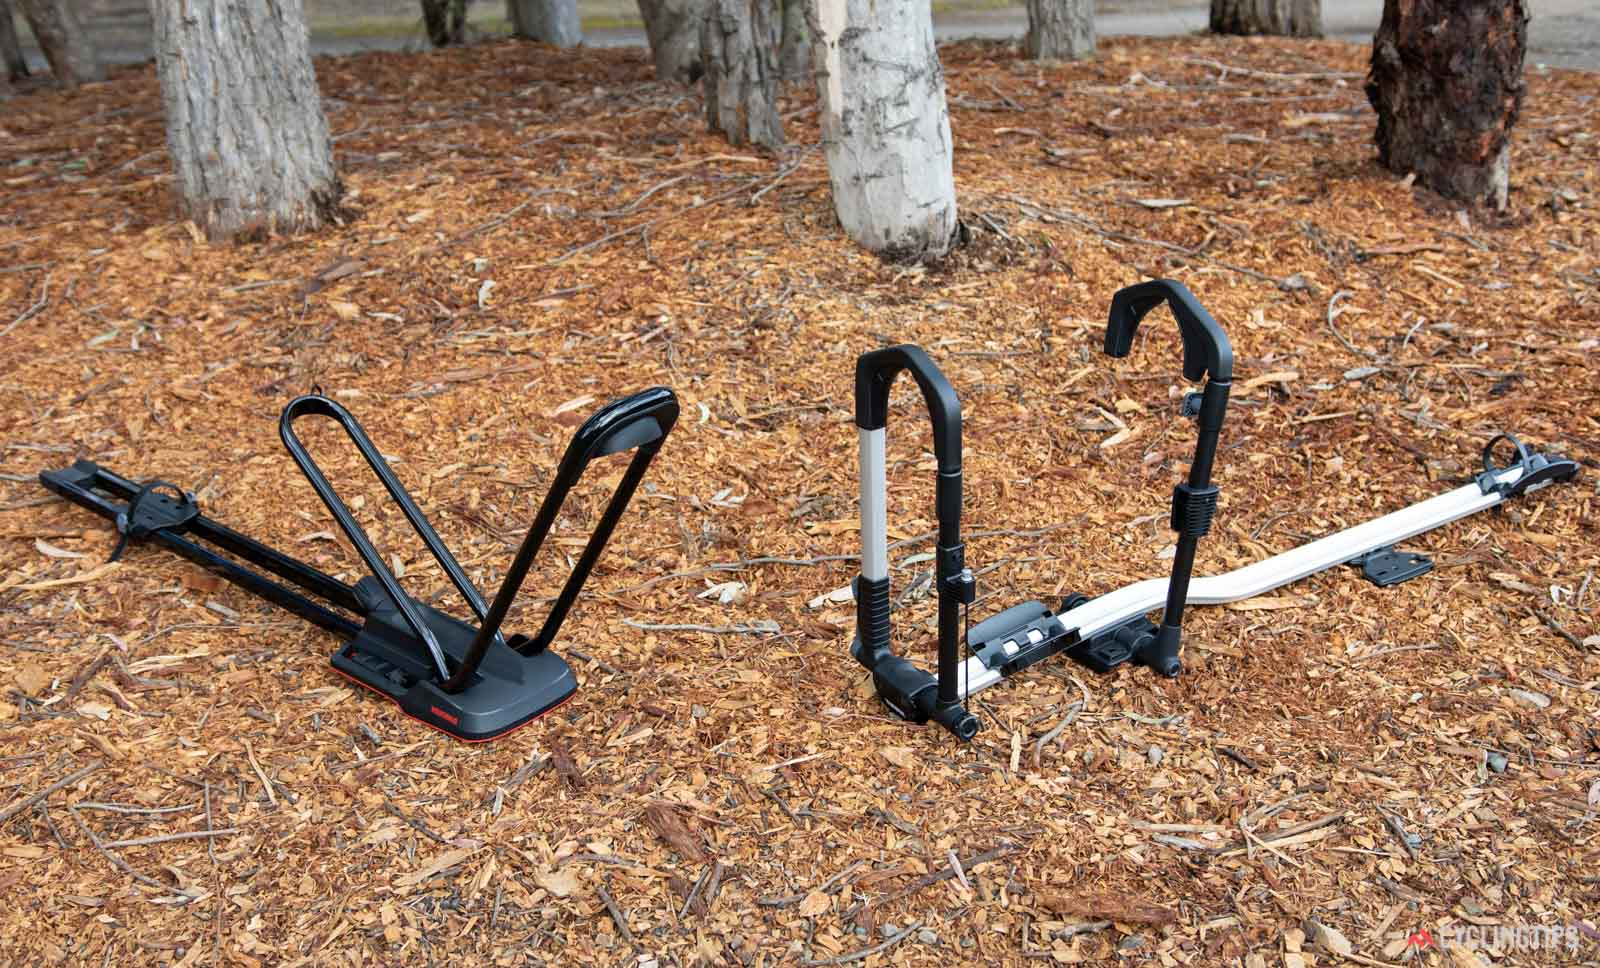 Yakima HighRoad versus Thule UpRide bike carrier review on ground